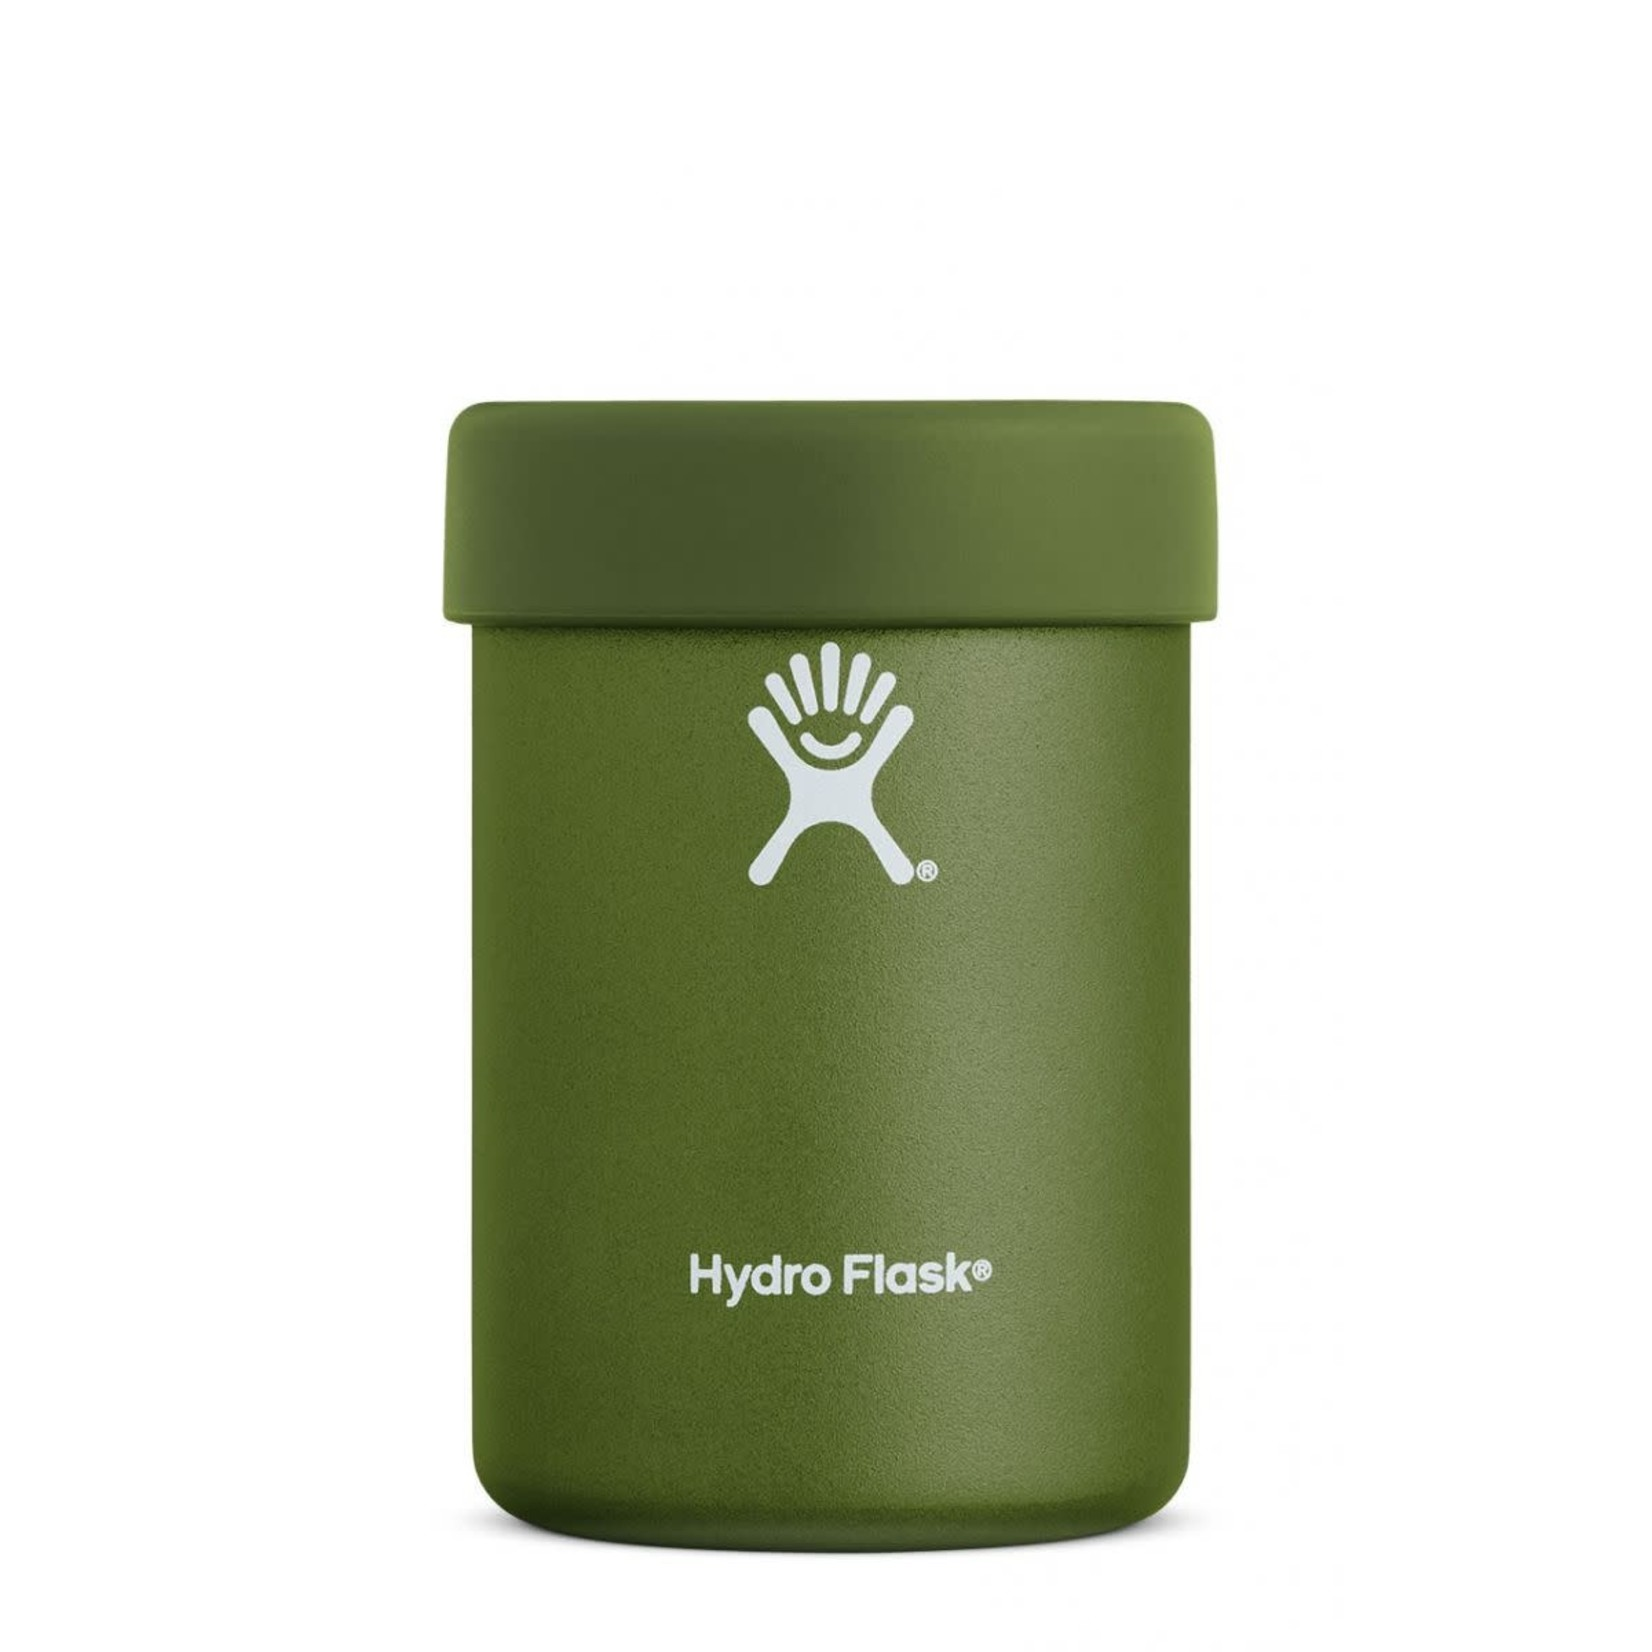 Hydro Flask Hydro Flask 12oz Cooler Cup.